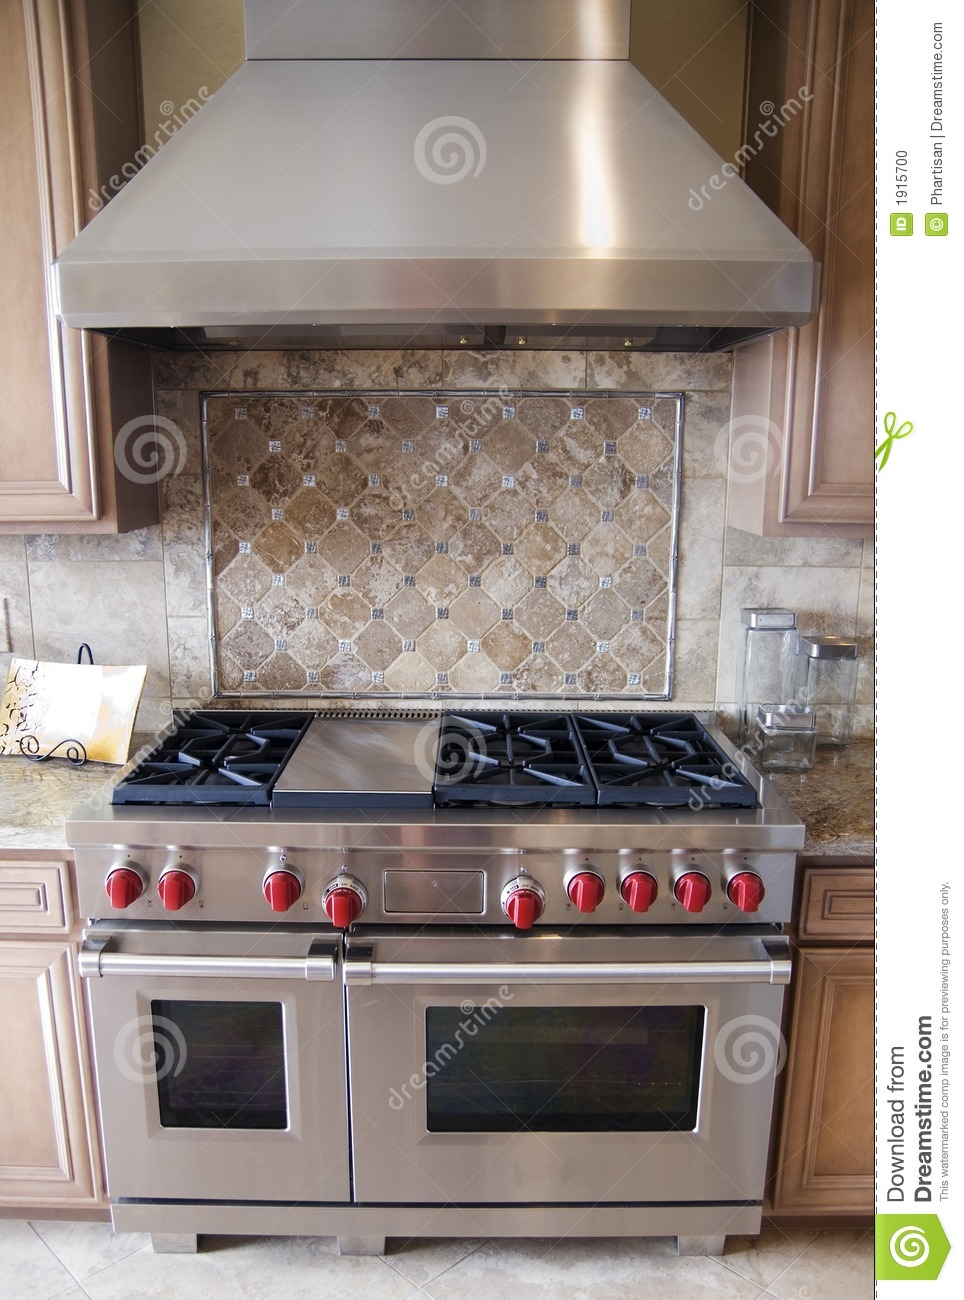 Luxury kitchen oven ranfe stock photo image of design for Luxury oven